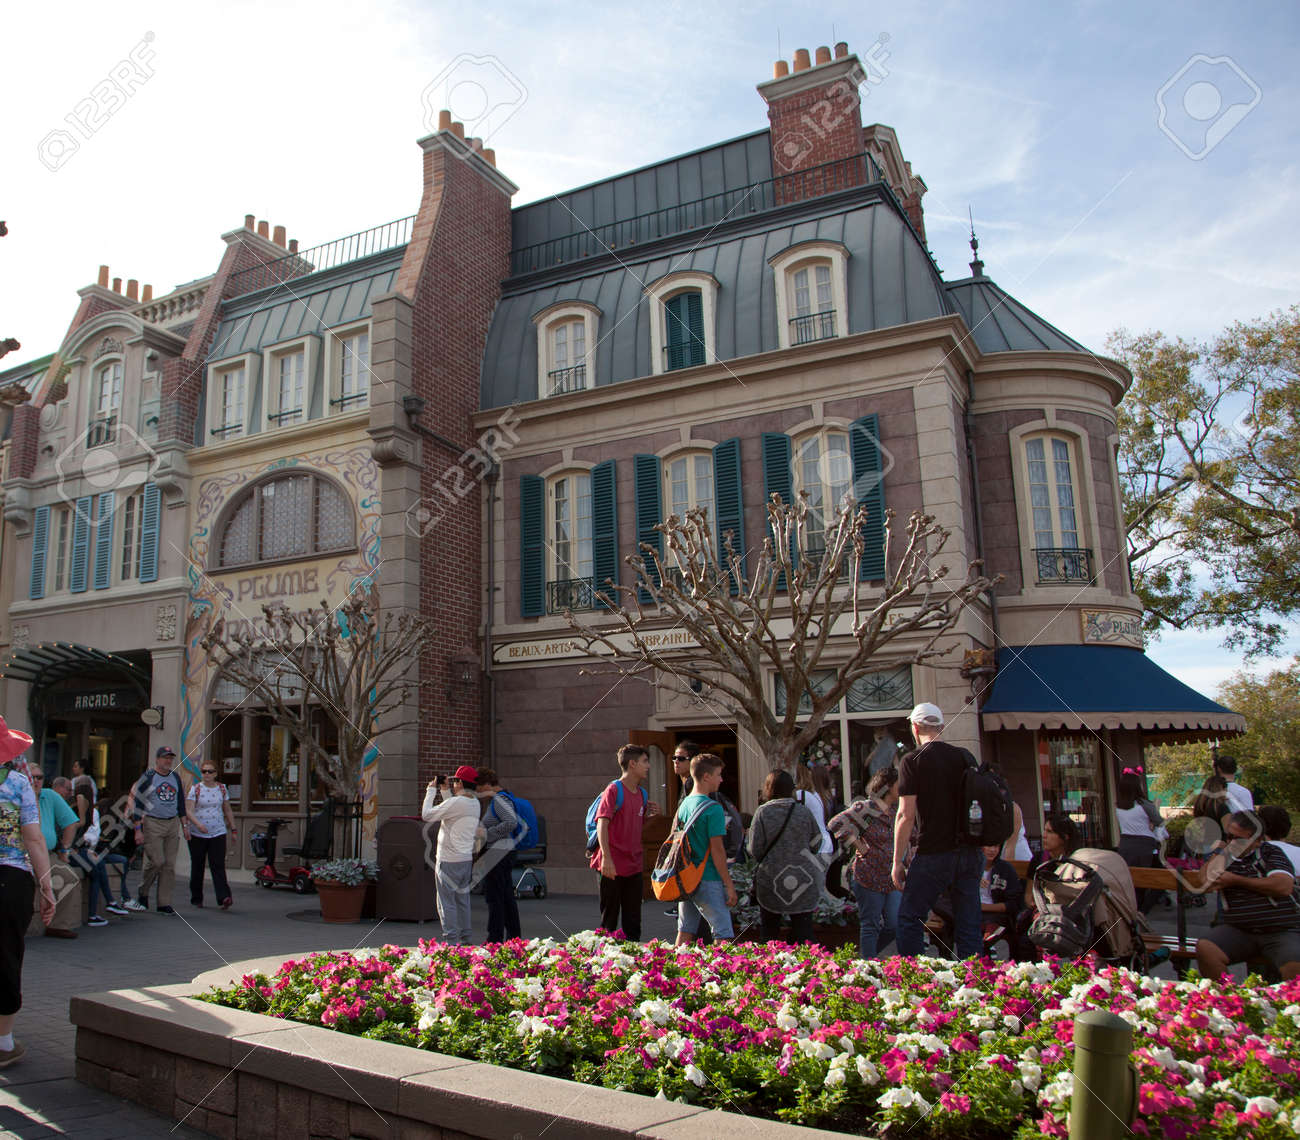 Orlando, Florida- February 5, 2018: little stores at Epcot's